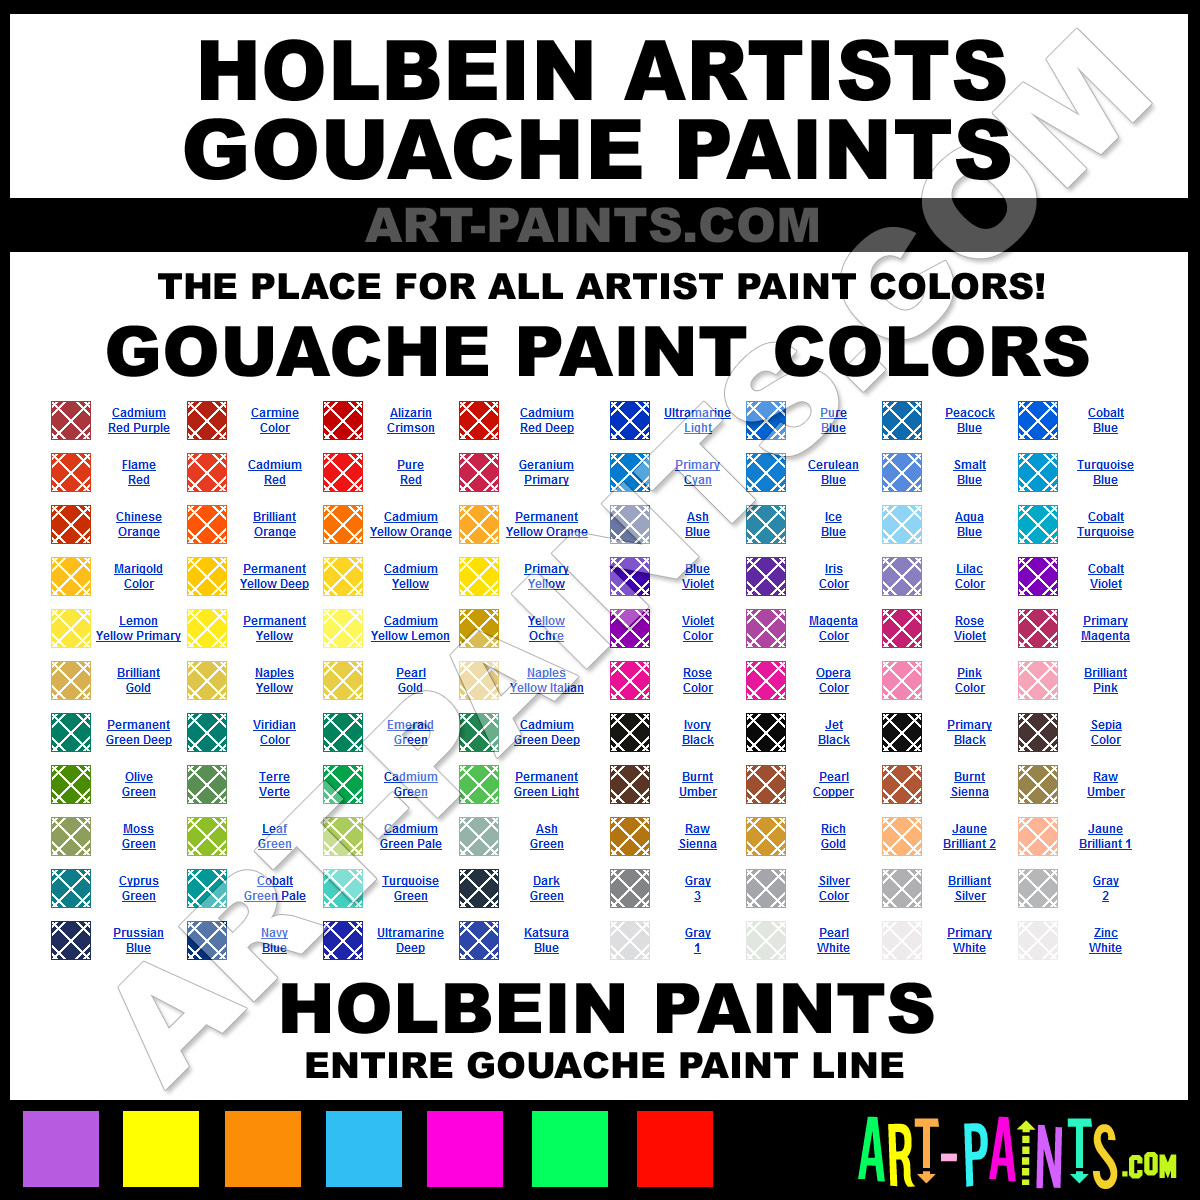 Holbein Artists Gouache Paint Colors Holbein Artists Paint Colors